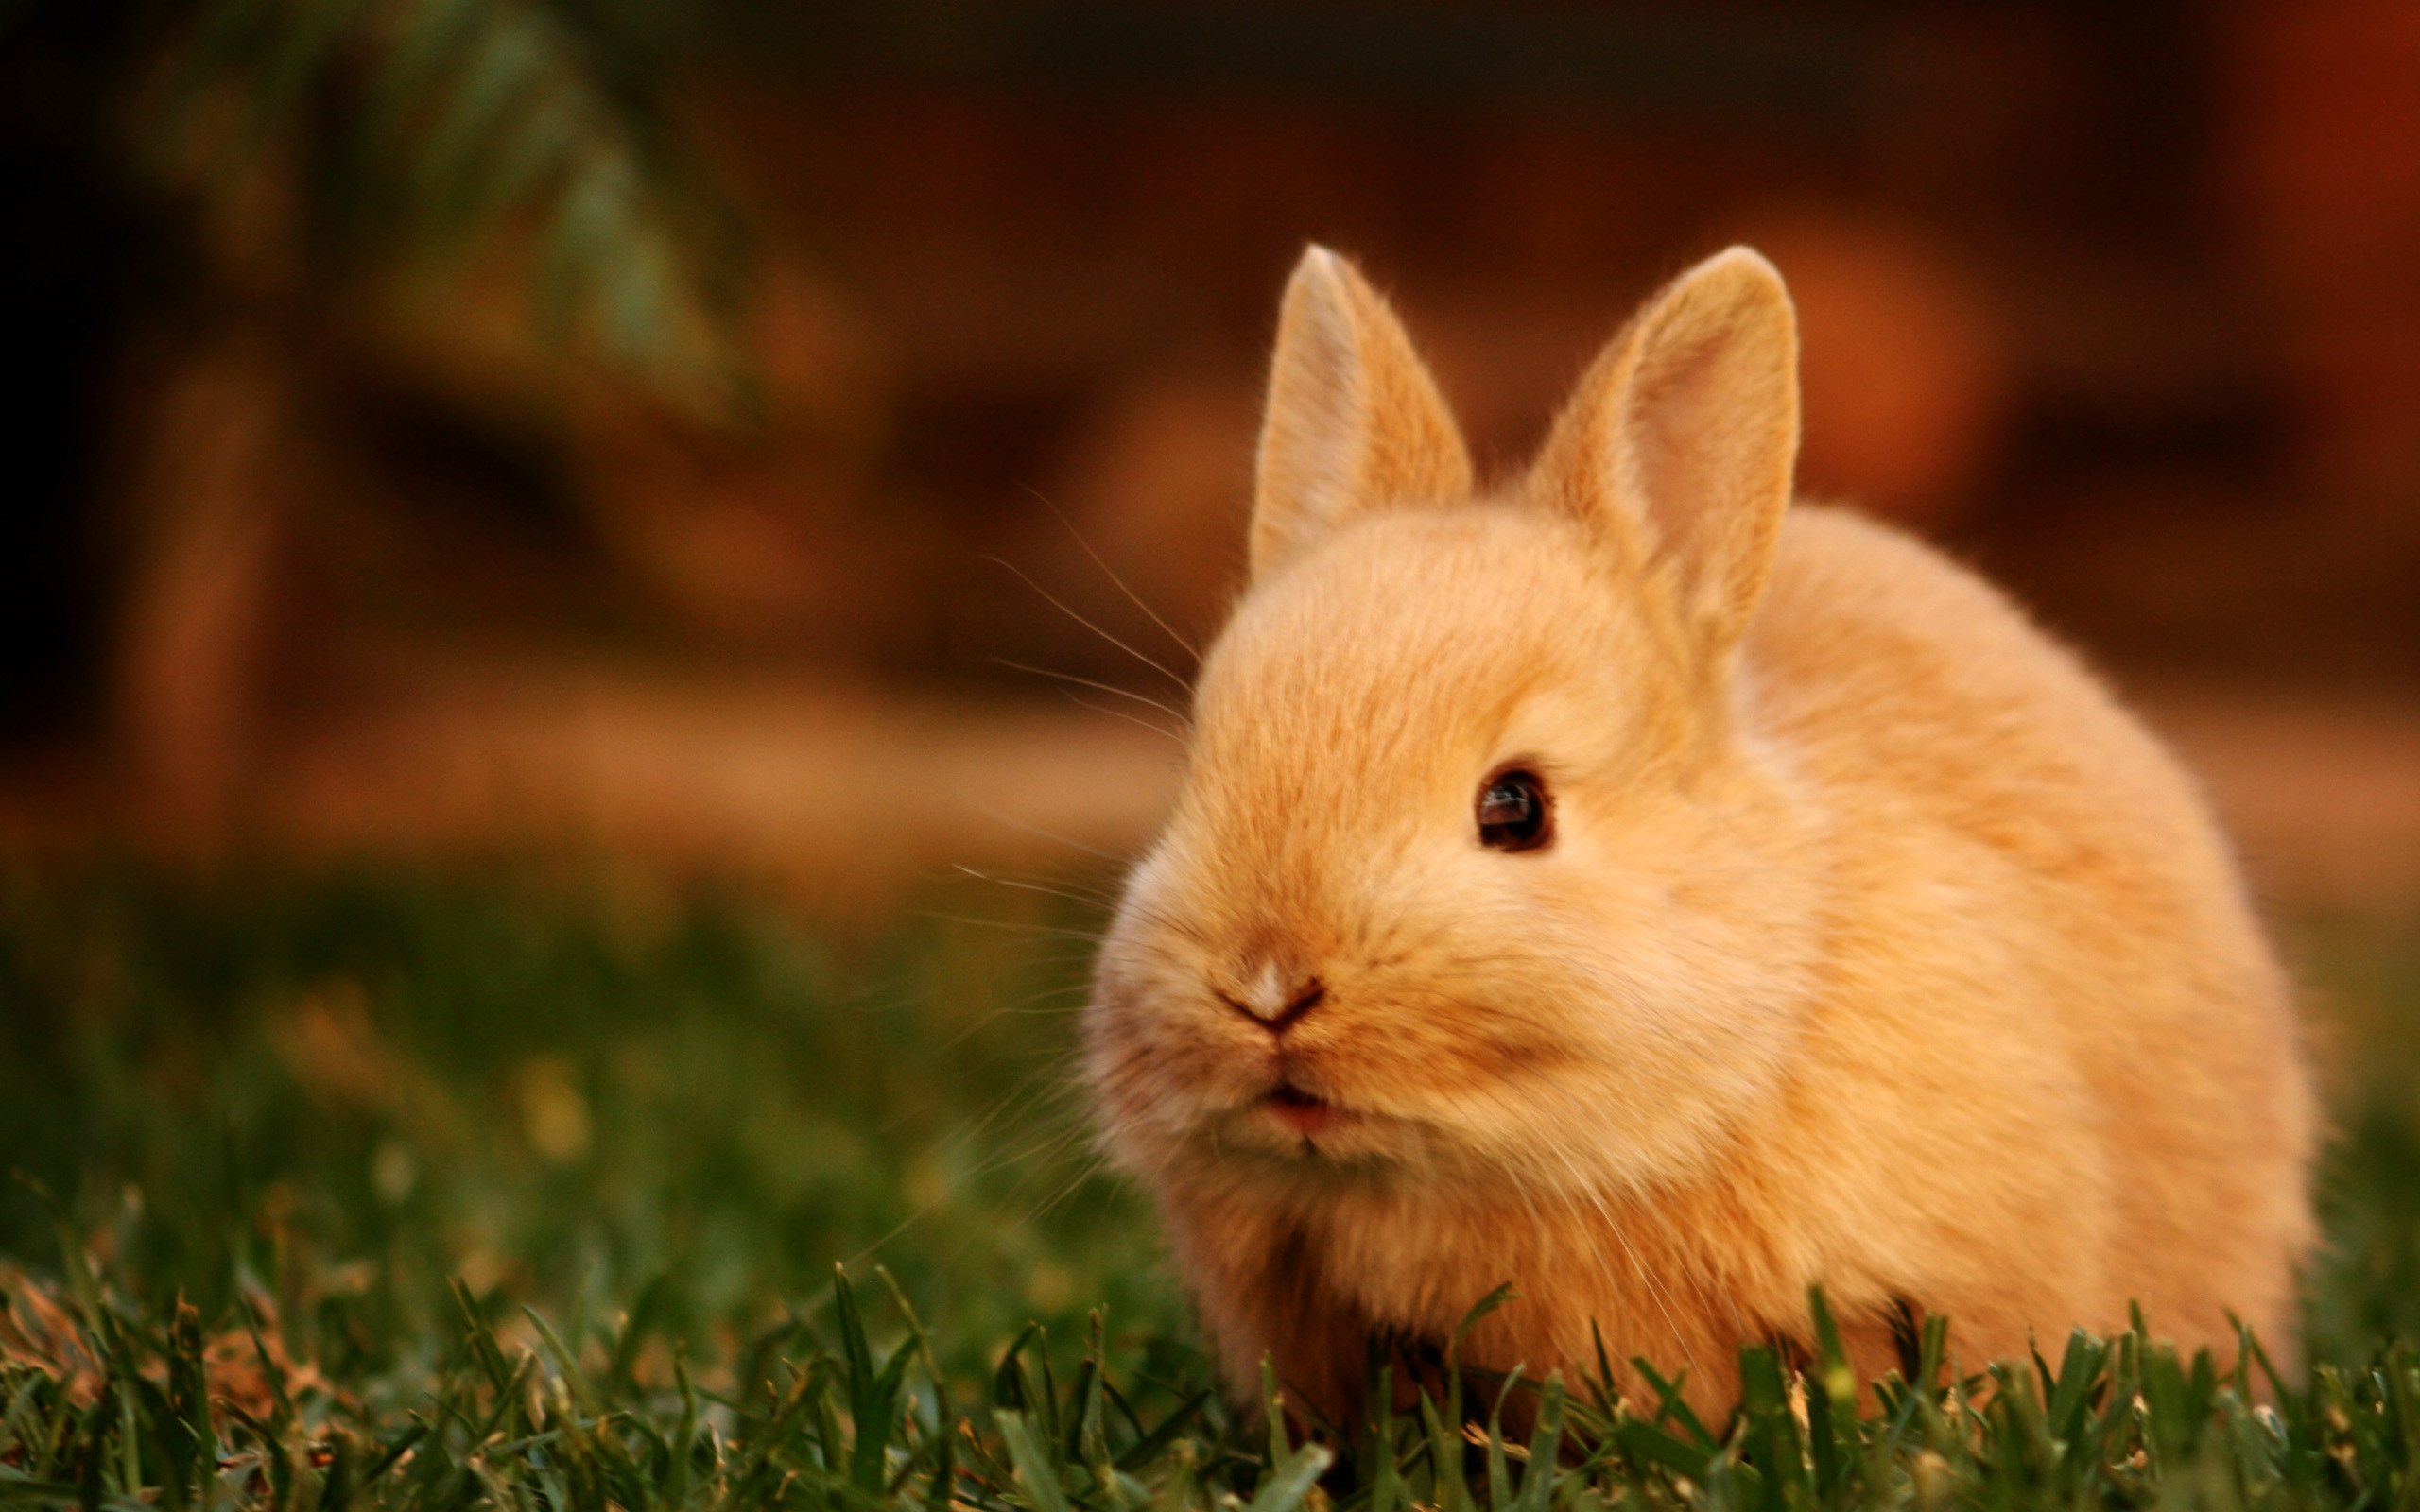 2560x1600 animal rabbit best desktop hd photos desktop wallpapers hd images background images mac desktop wallpapers